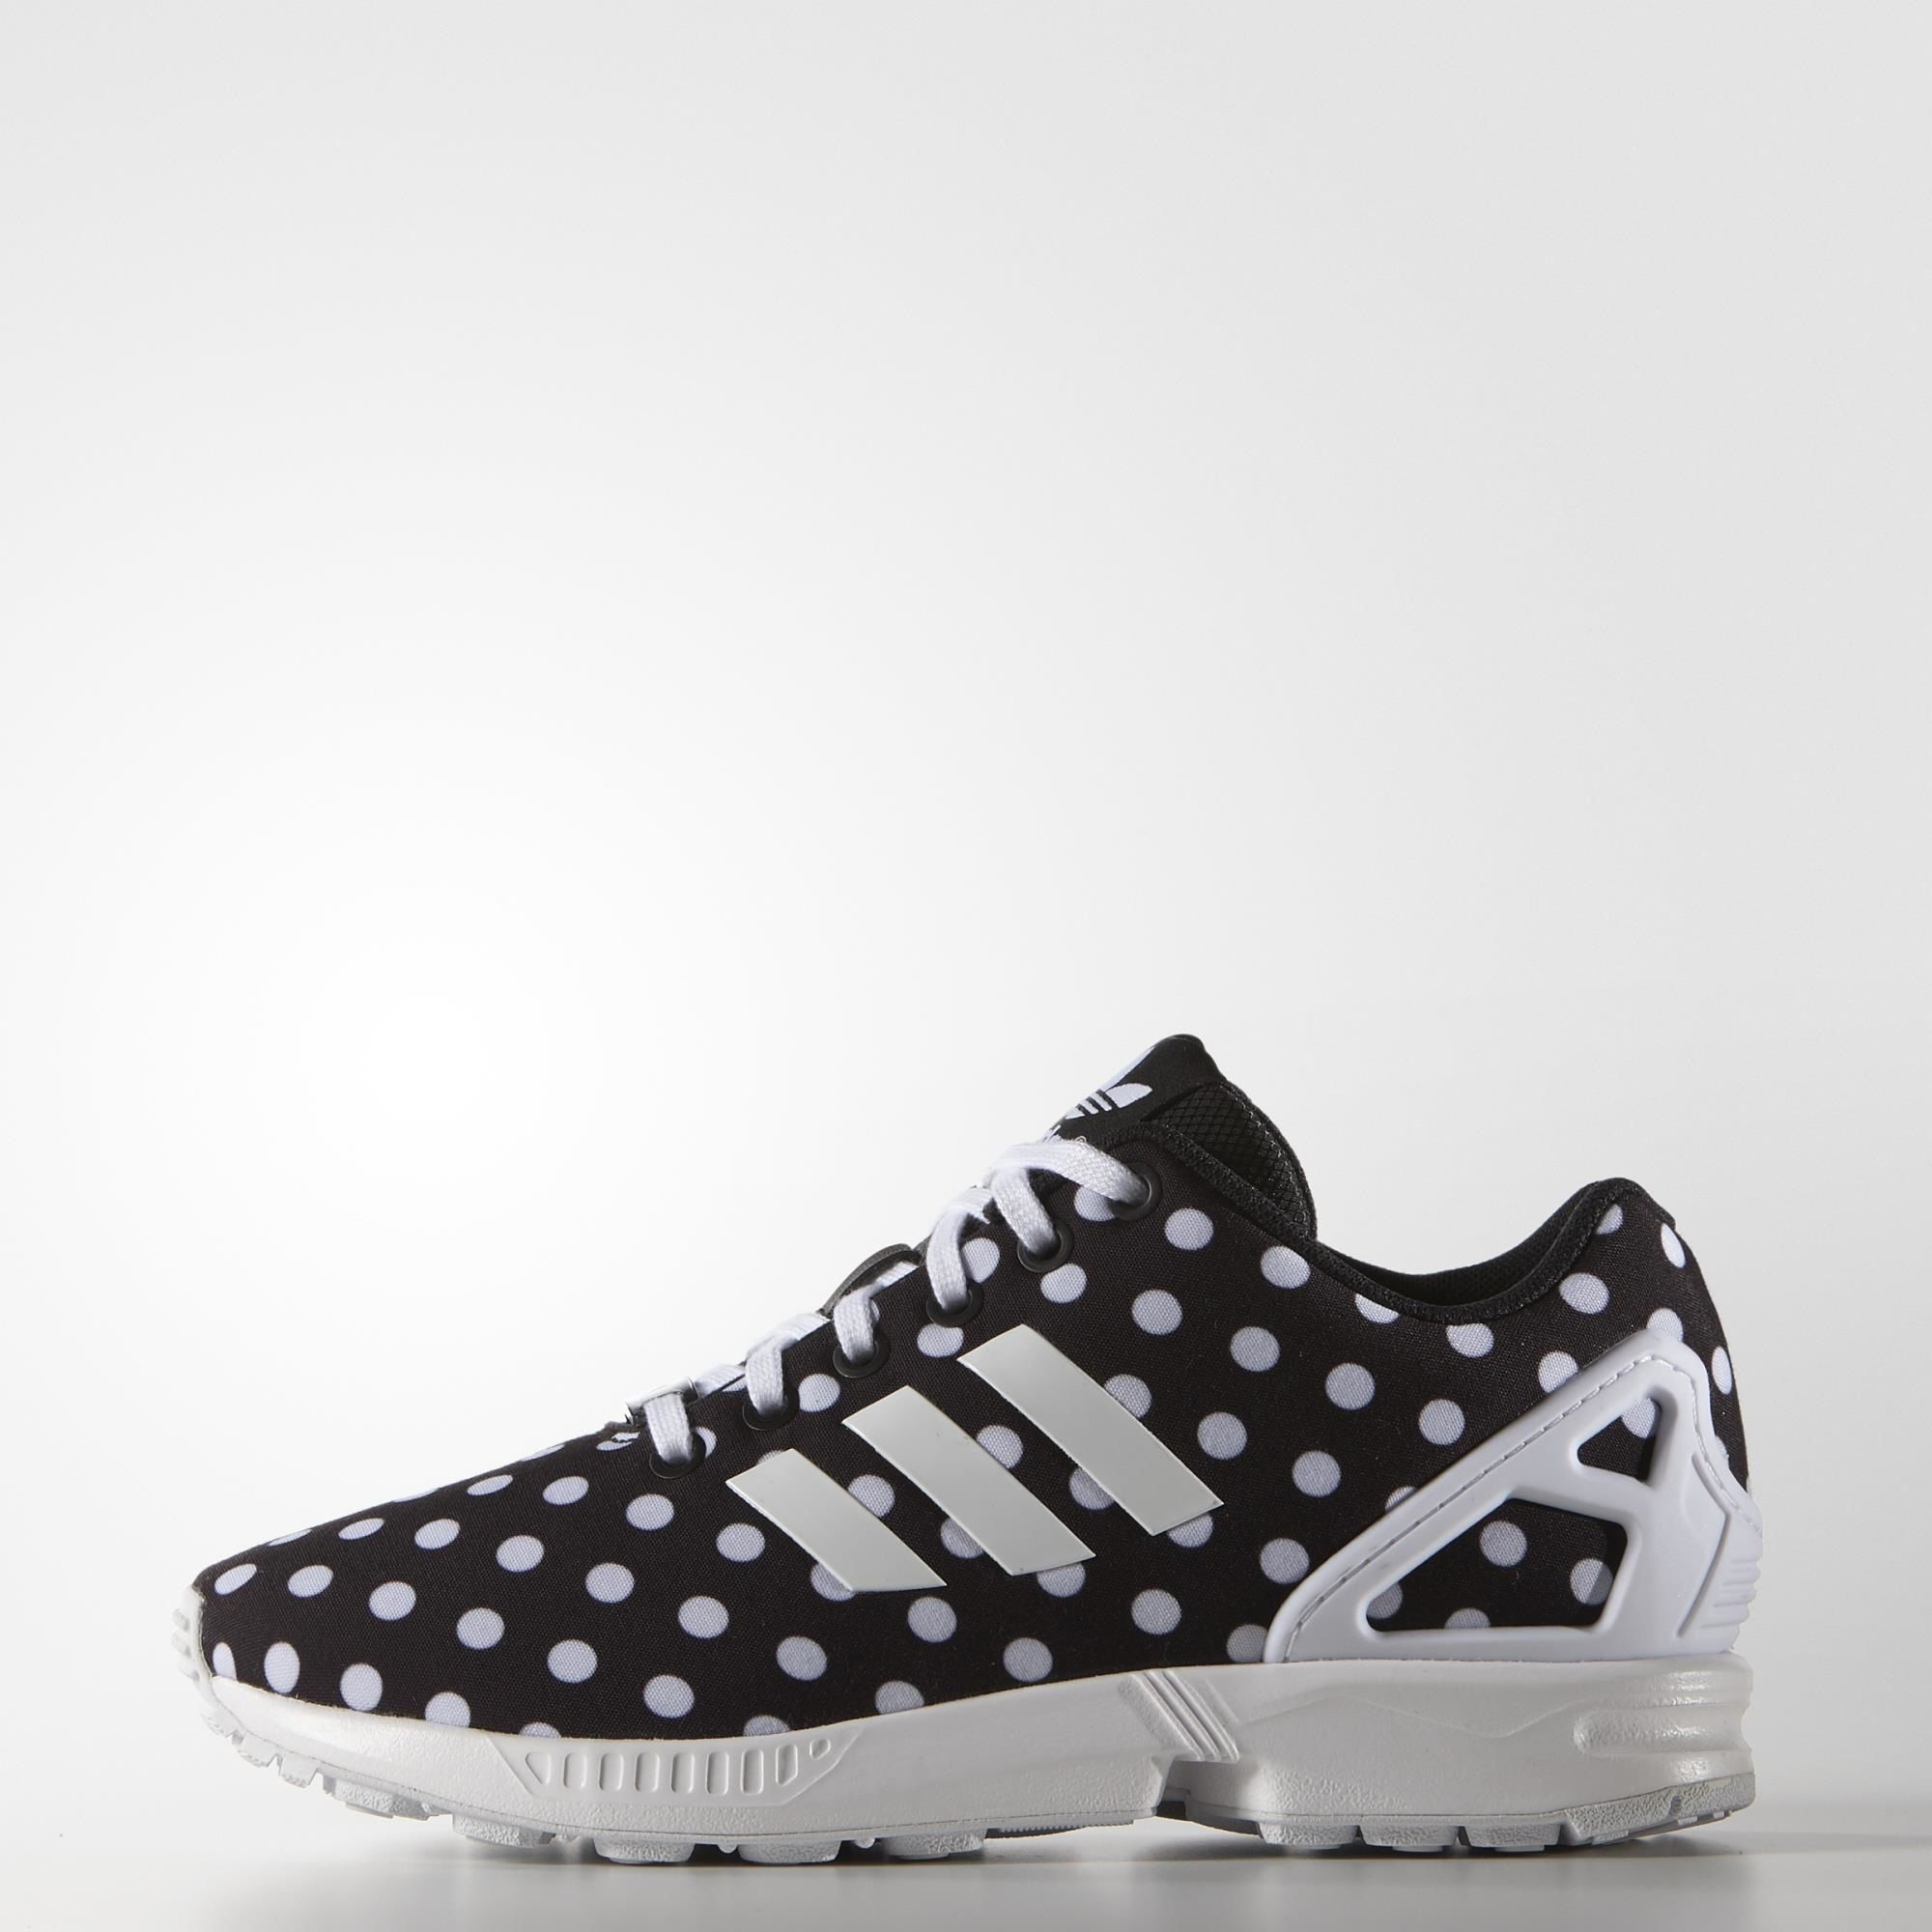 outlet store 8a416 26913 Chaussure ZX Flux - noir adidas   adidas France